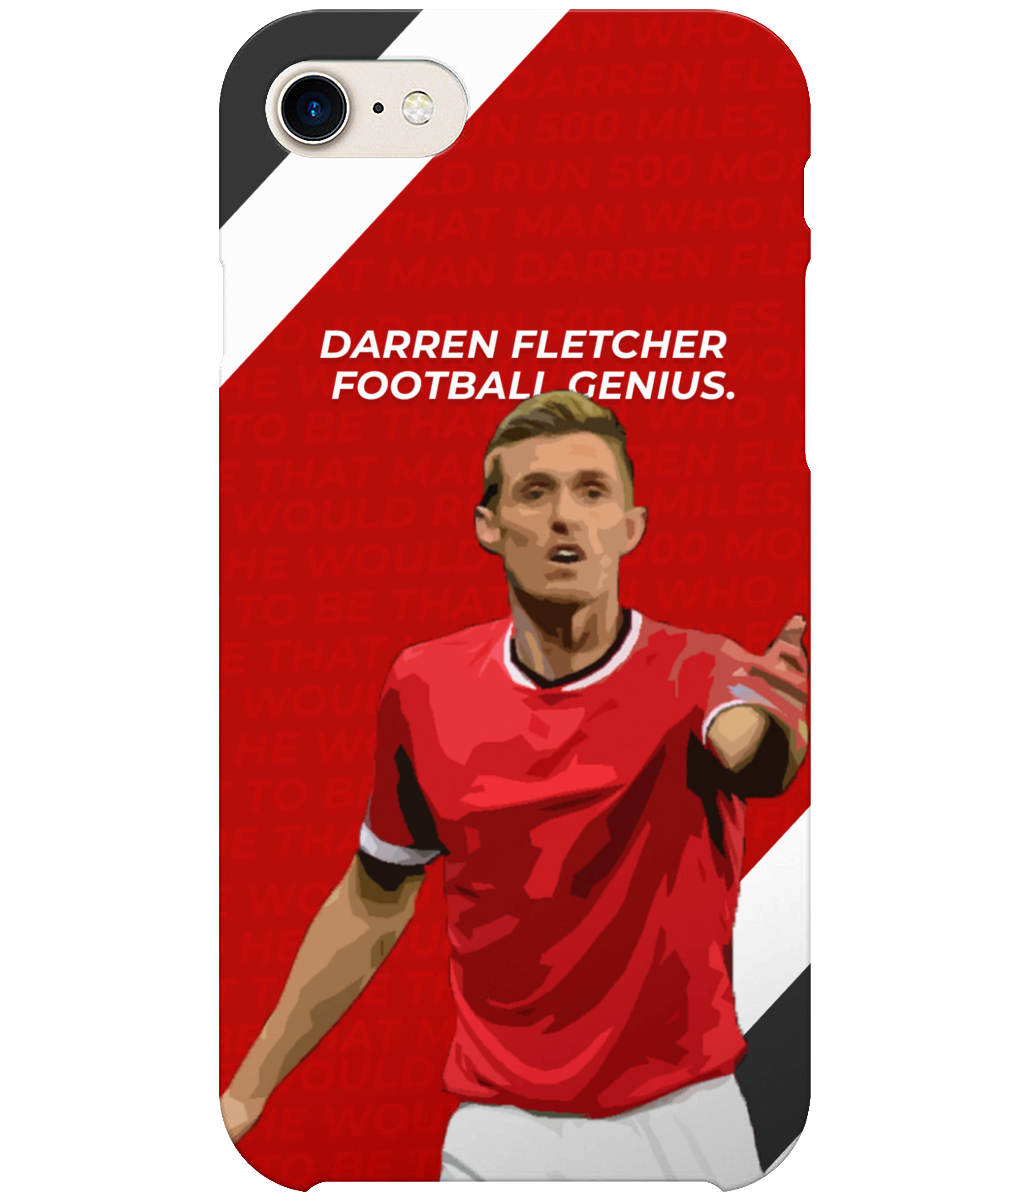 Darren Fletcher Football Genius Phone Case